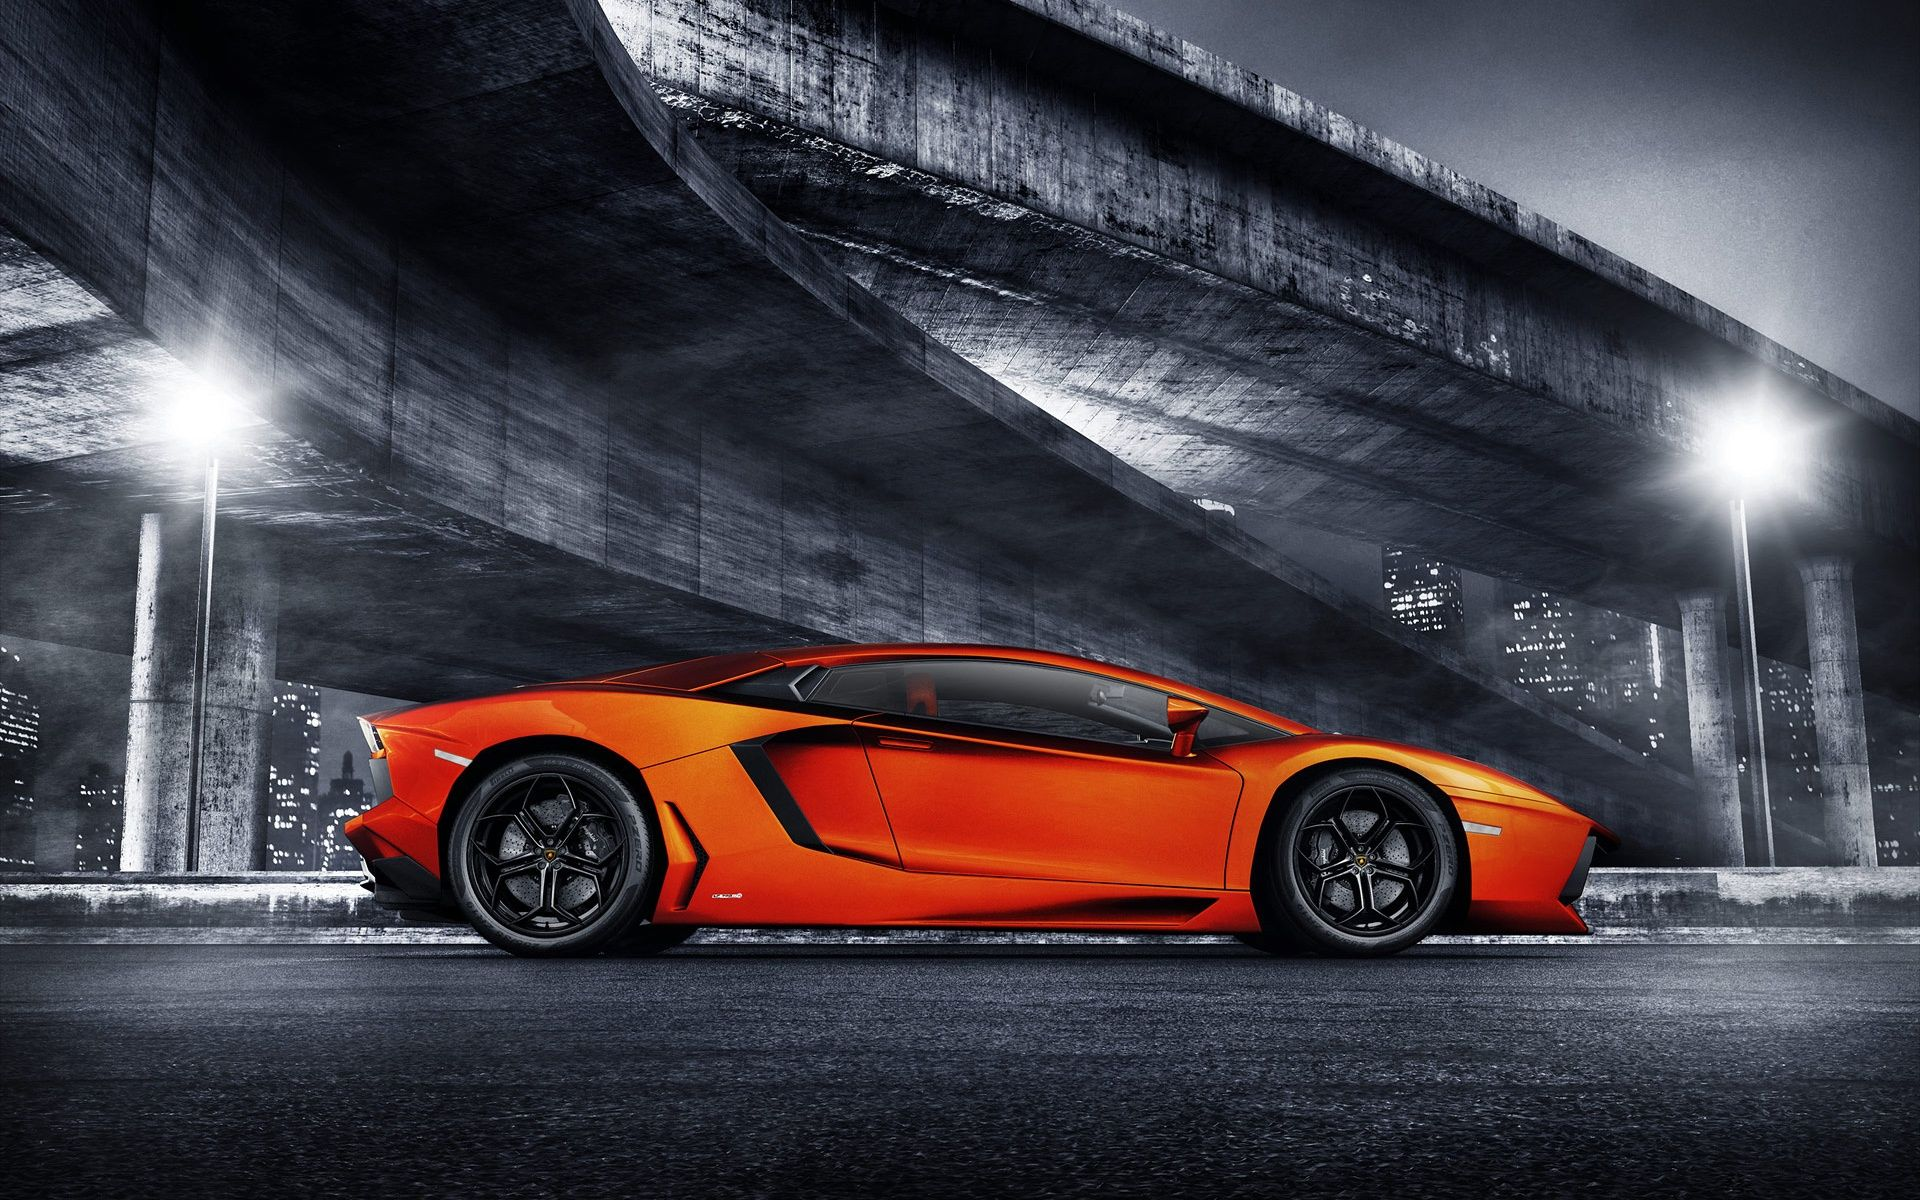 Sports Cars Lamborghini Wallpapers - Top Free Sports Cars